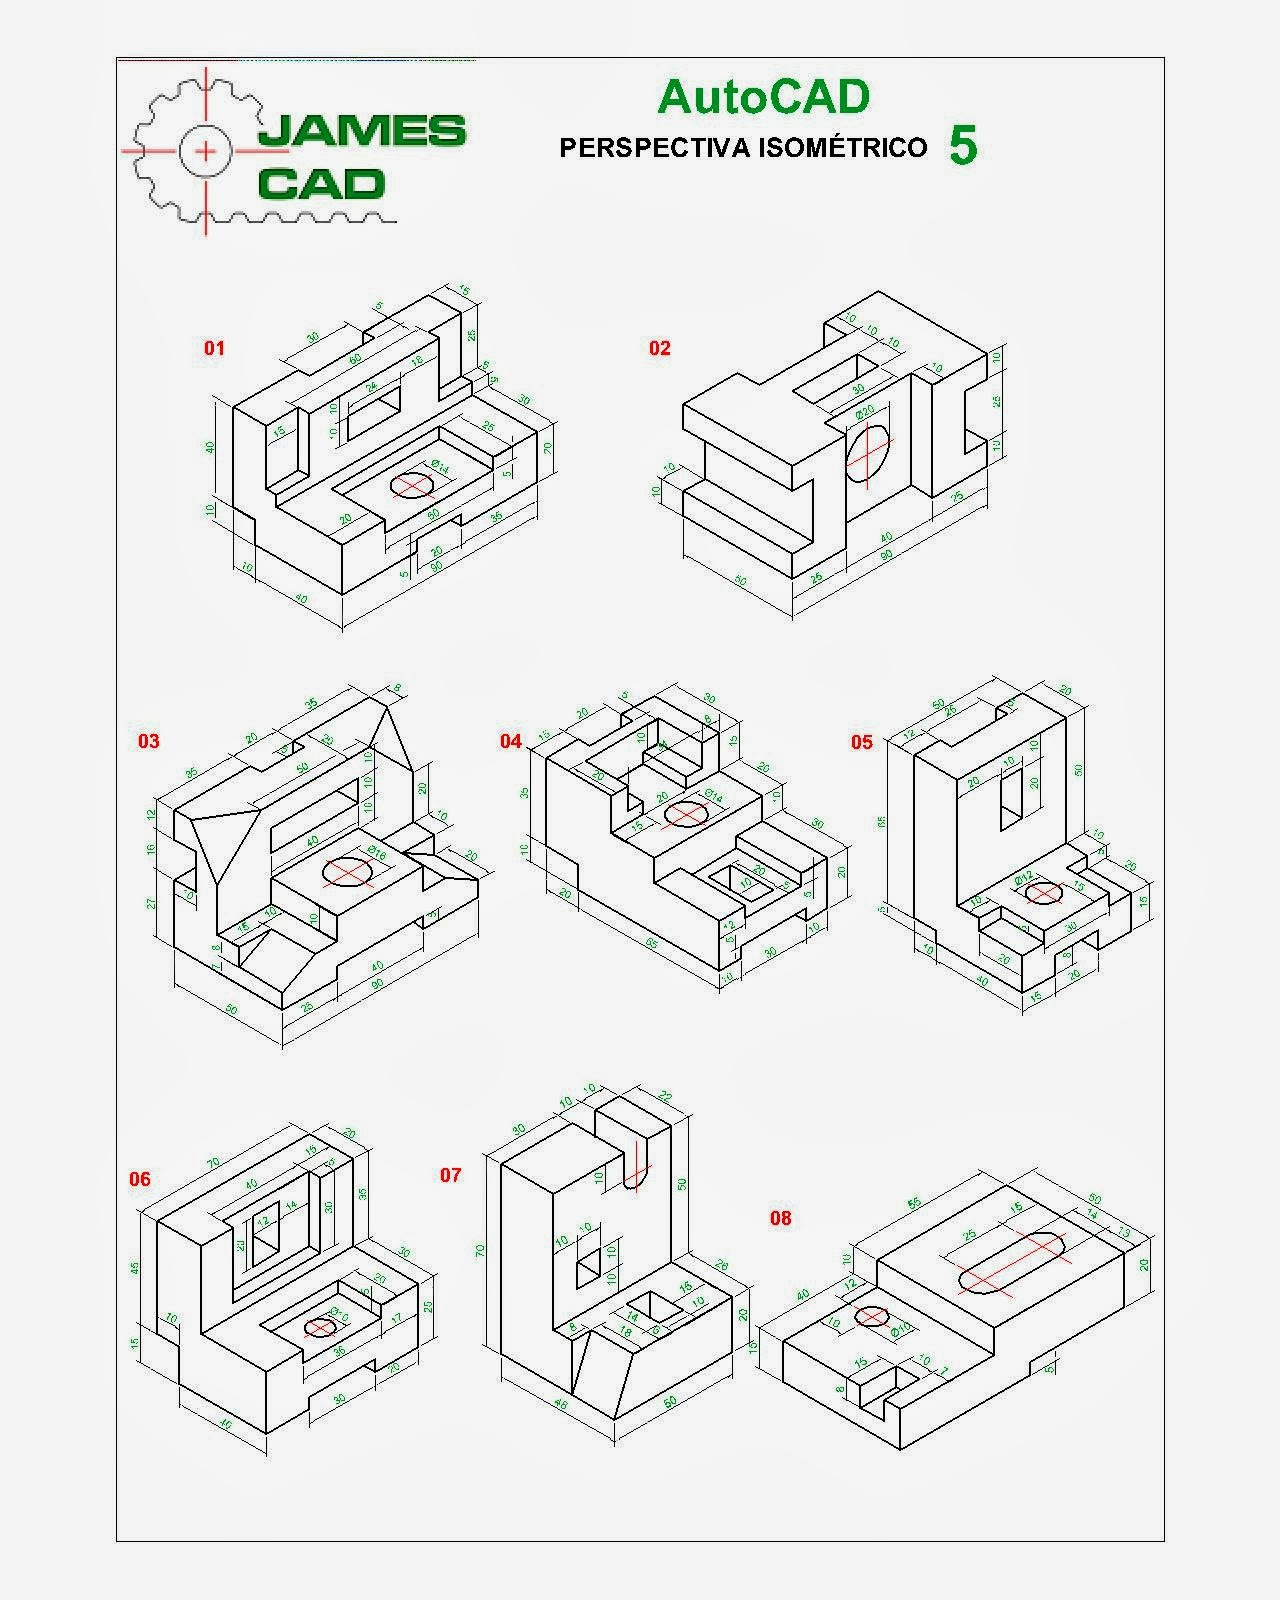 hight resolution of jamescad auto electrical wiring diagram top convertible top wiring harness for bmw 1 series 54347577559